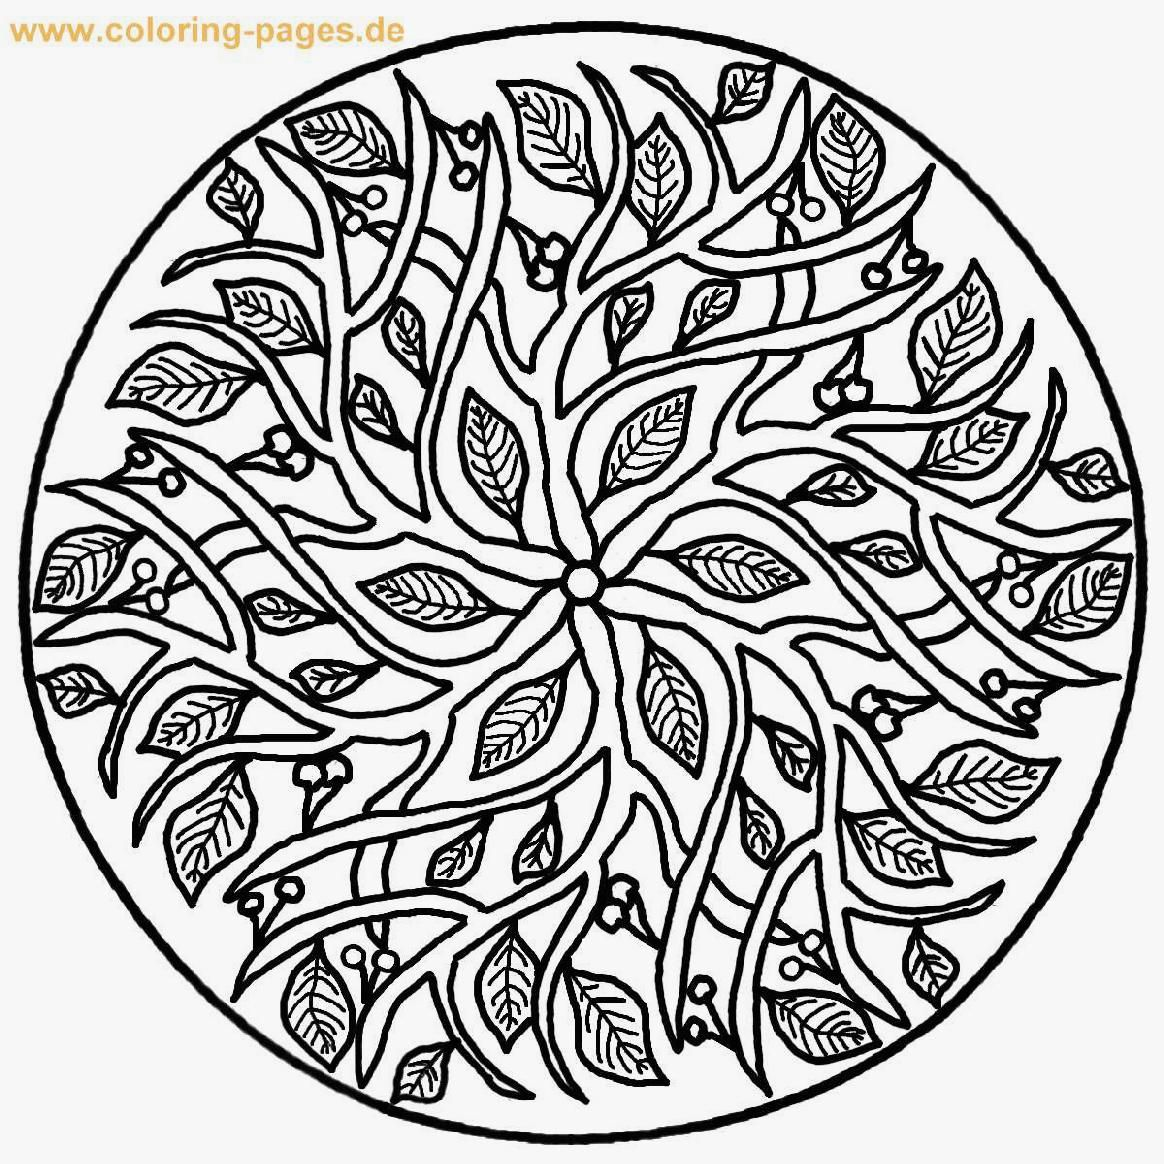 free printable coloring pages for adults geometric 69444 jpg 1164